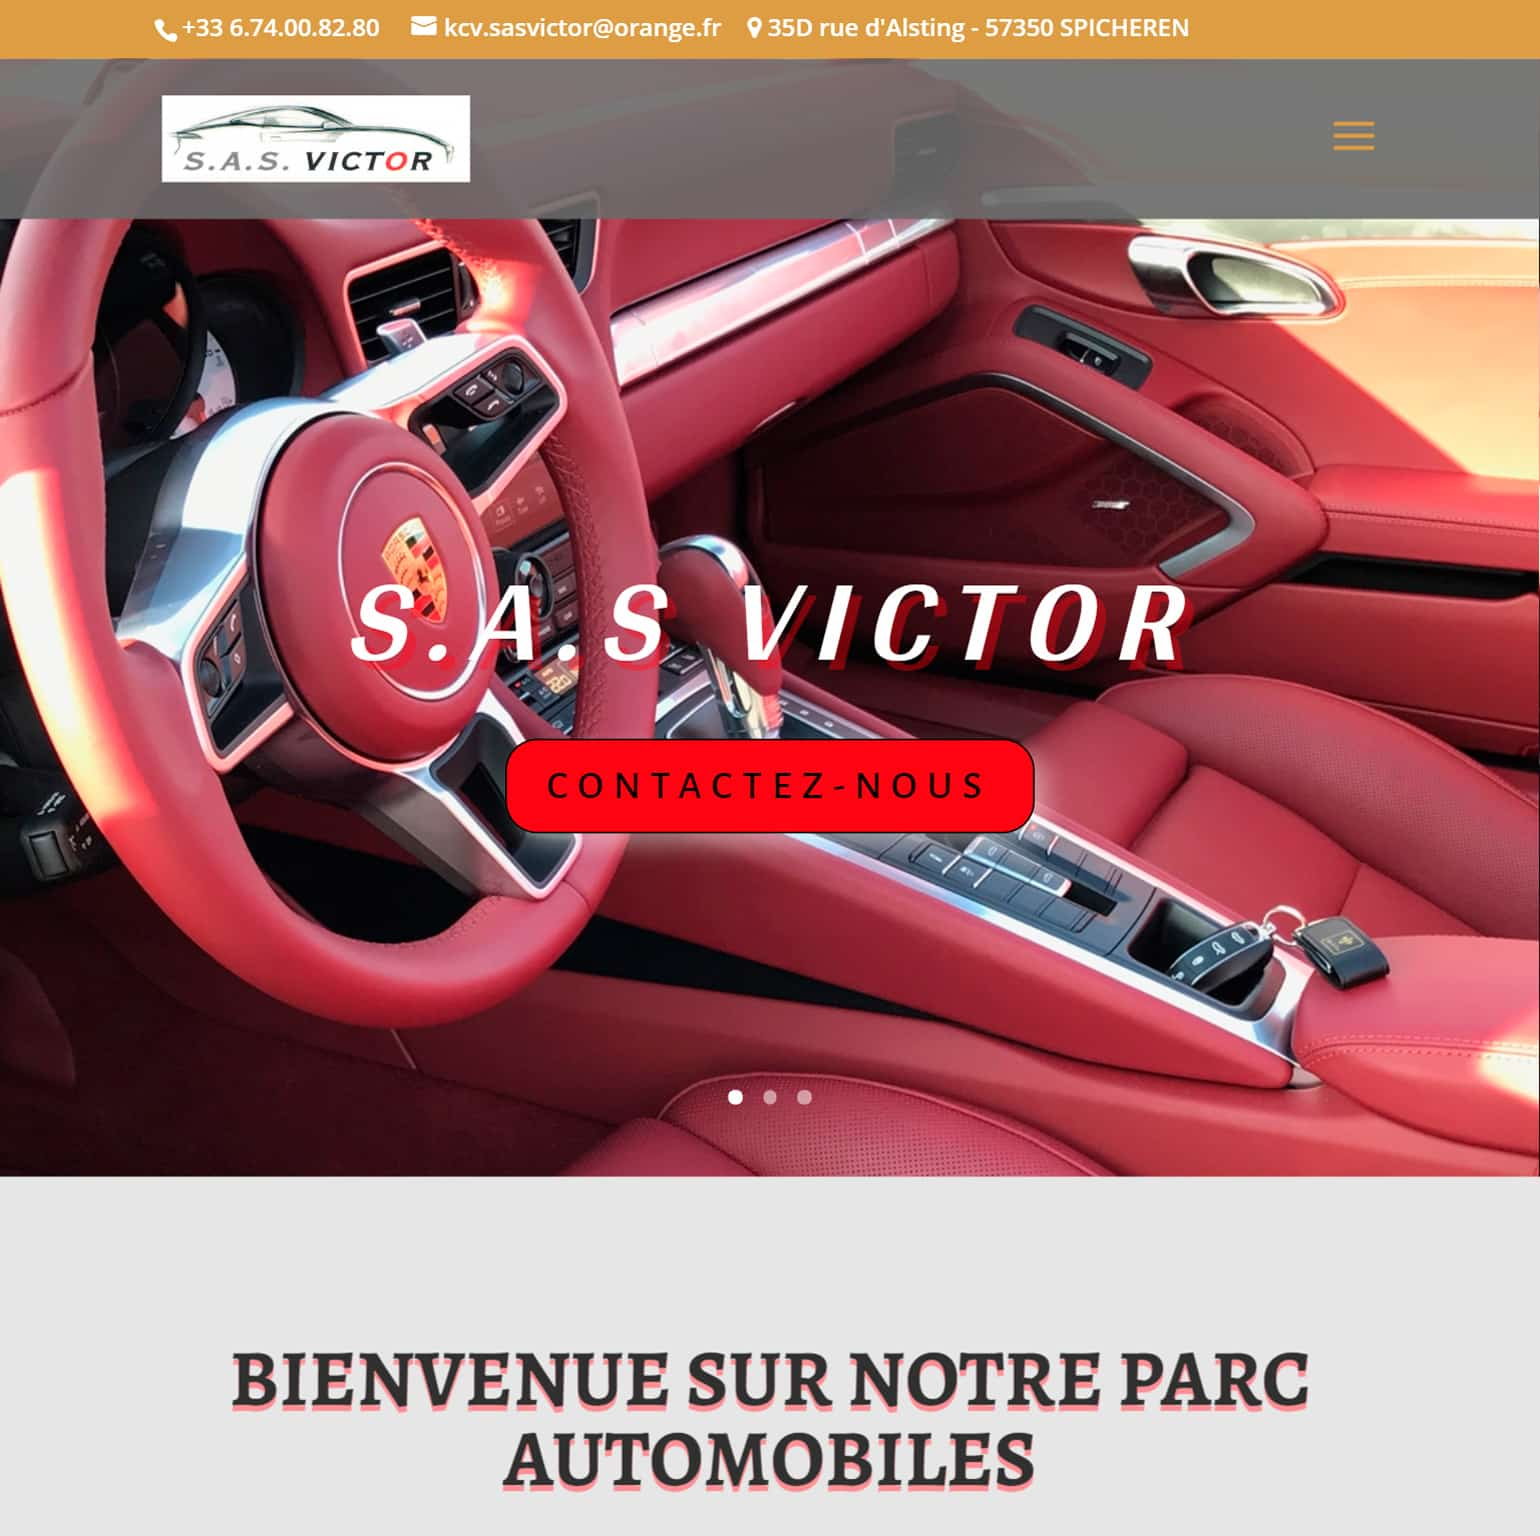 Capture écran tablette du site internet de l'entreprise SAS Victor à Spicheren